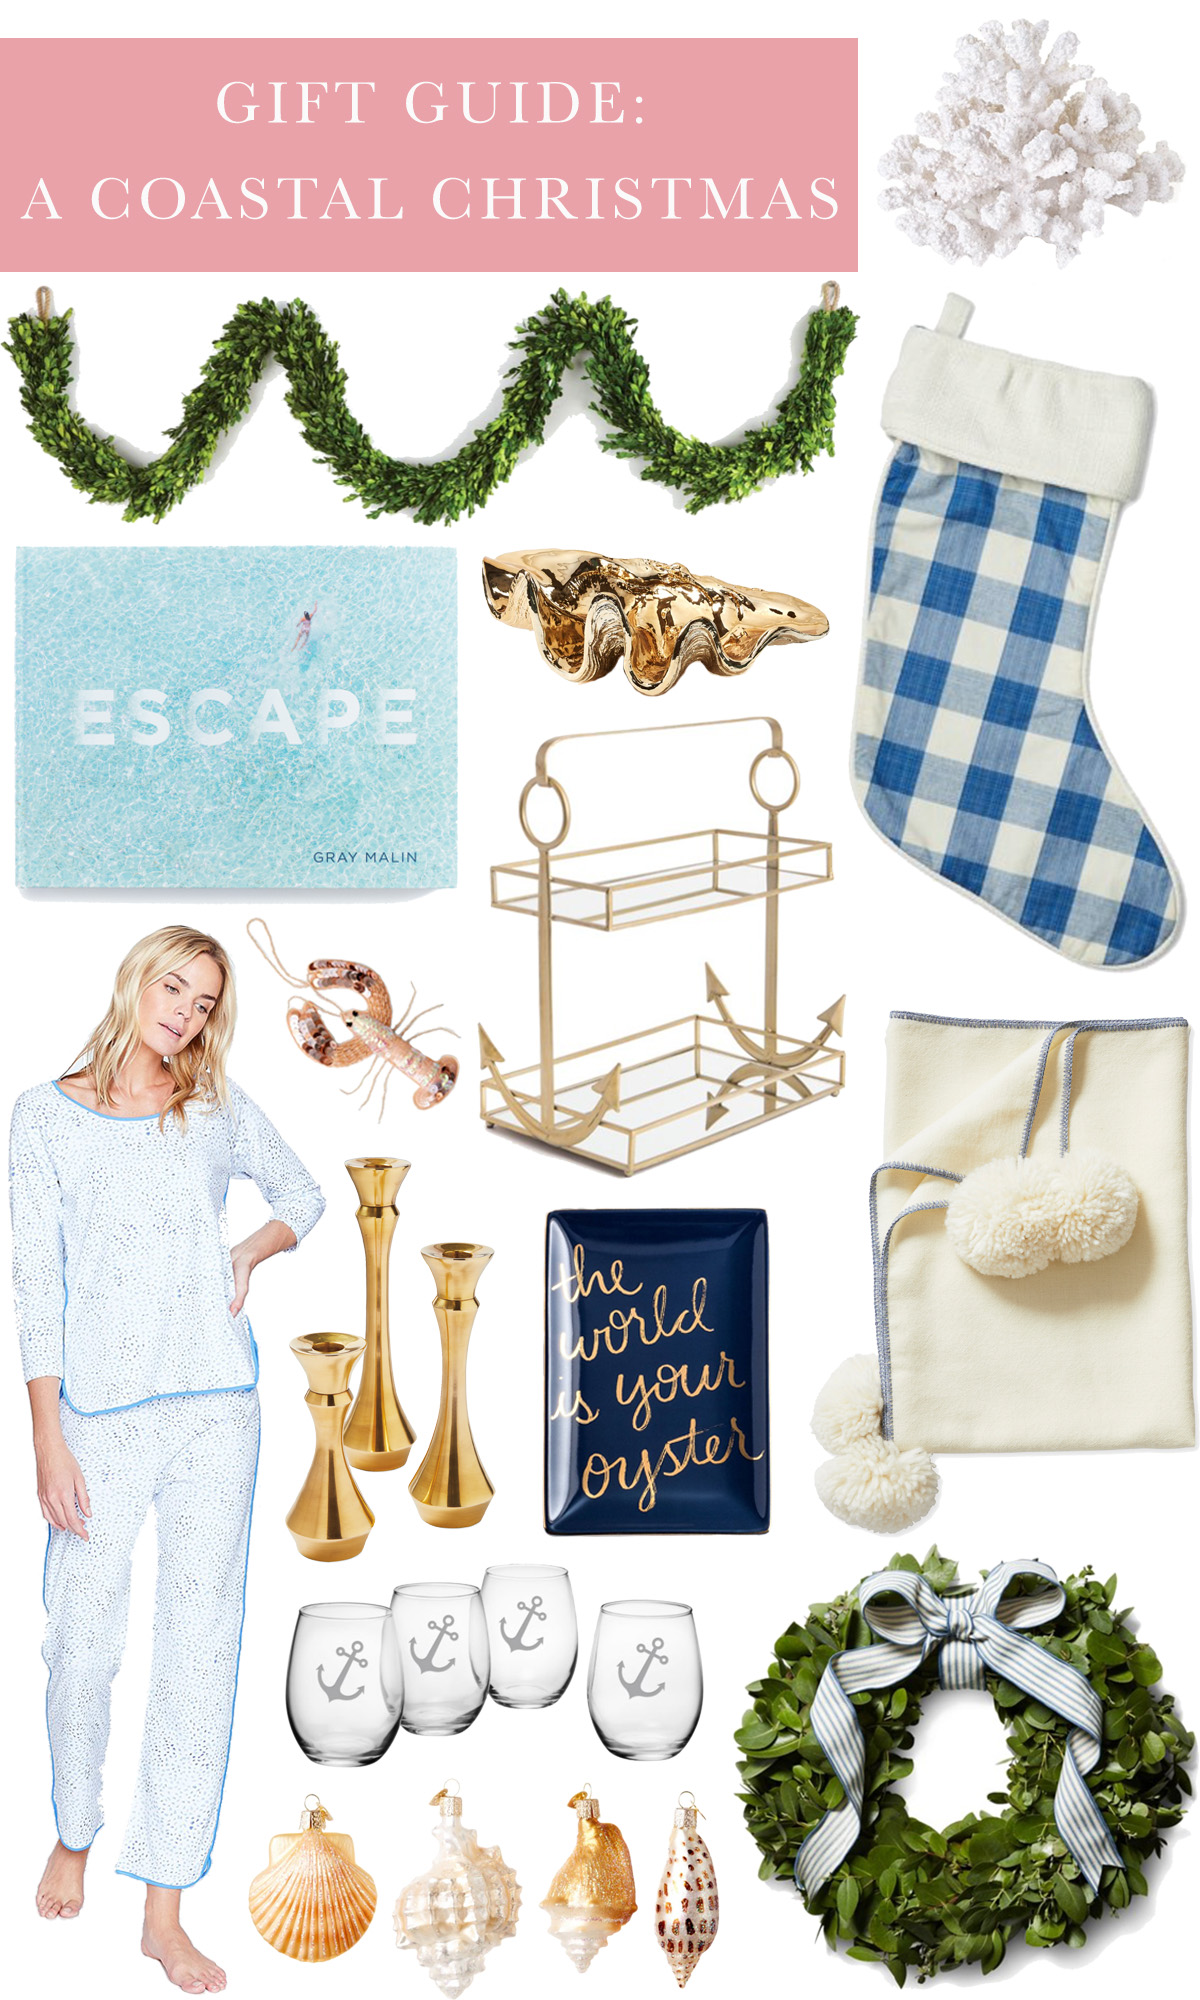 A Holiday Gift Guide: A Coastal Christmas roundup